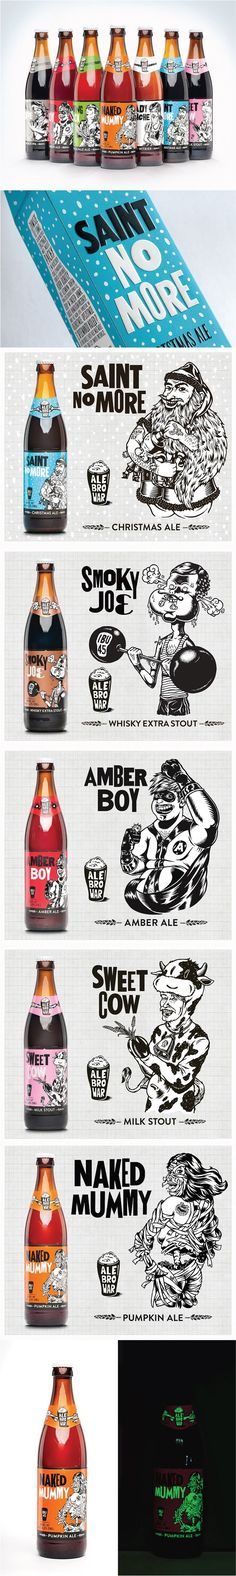 Funny for our beer loving peeps PD (I personally would edit this back a little more from the way quirky side but I know their audience and it will work. Cool Packaging, Coffee Packaging, Beverage Packaging, Bottle Packaging, Brand Packaging, Gift Packaging, Chocolate Packaging, Design Packaging, Label Art